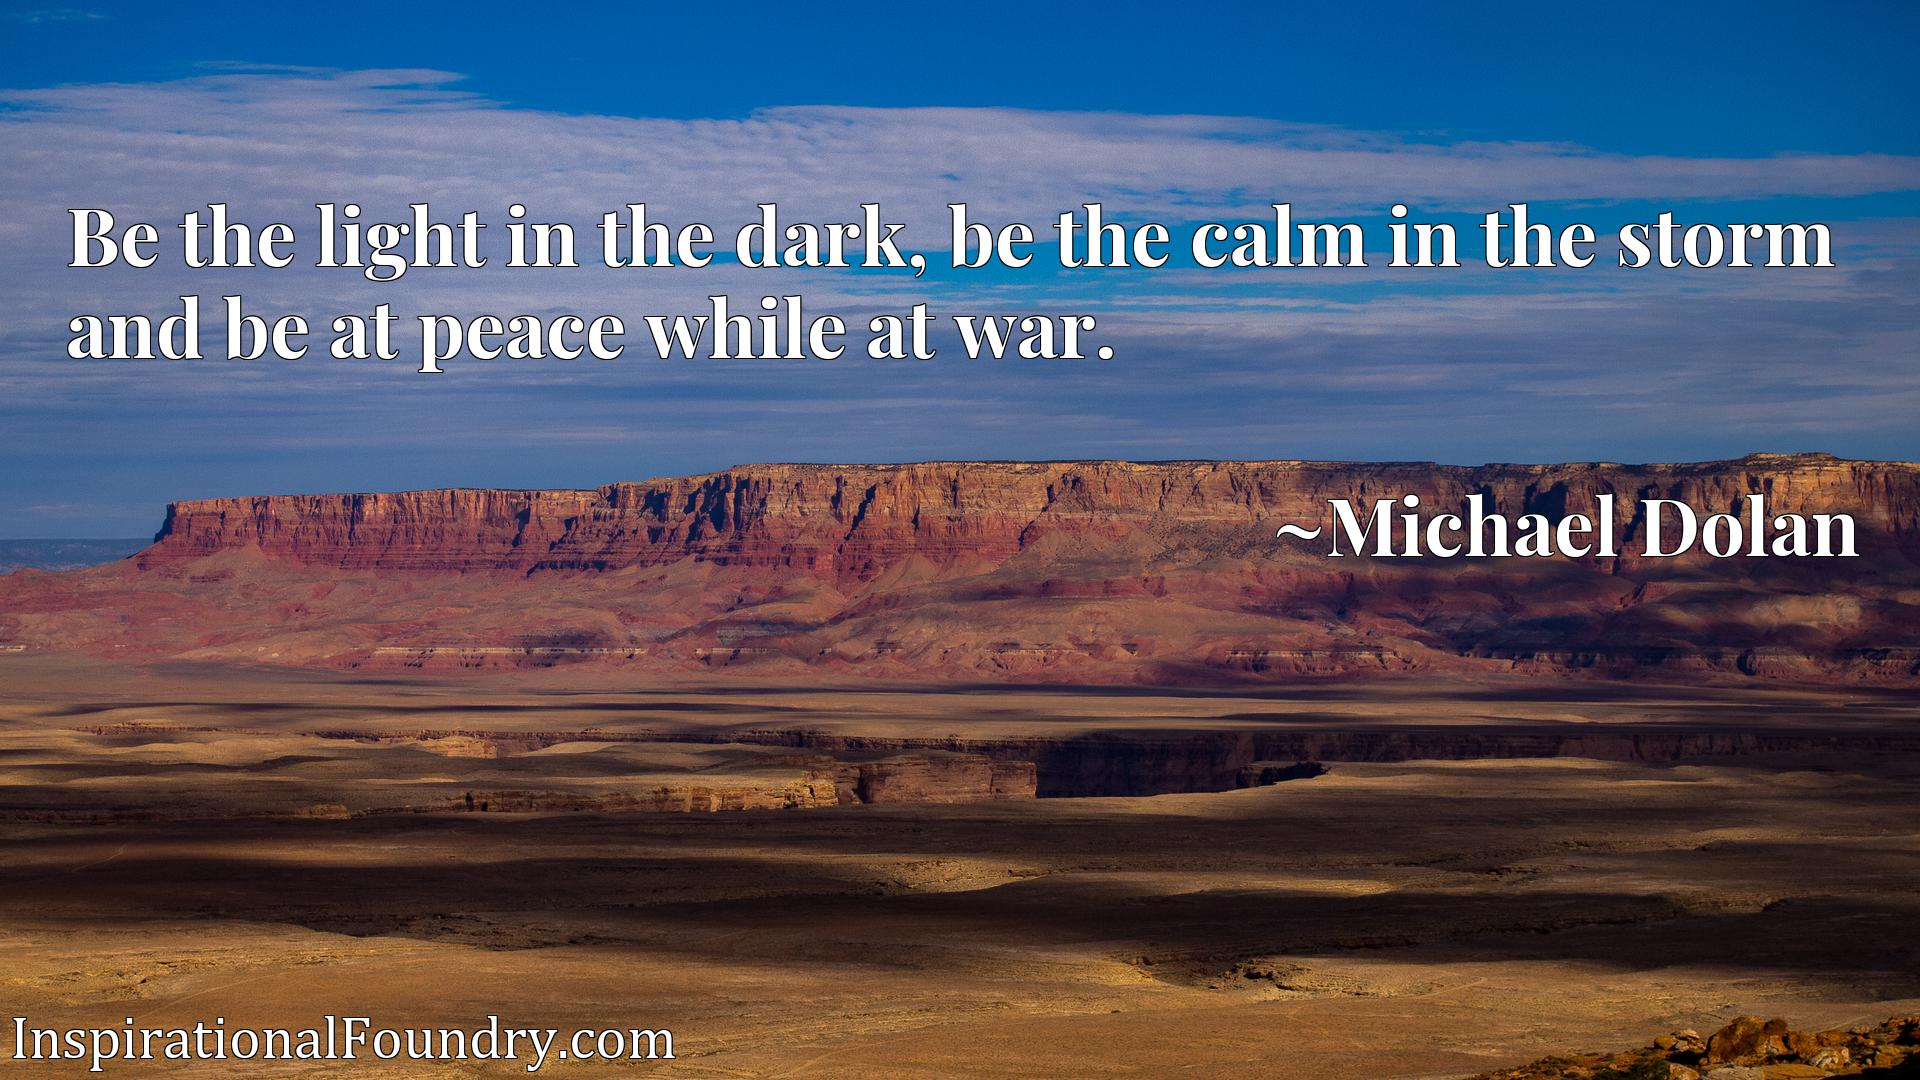 Be the light in the dark, be the calm in the storm and be at peace while at war.